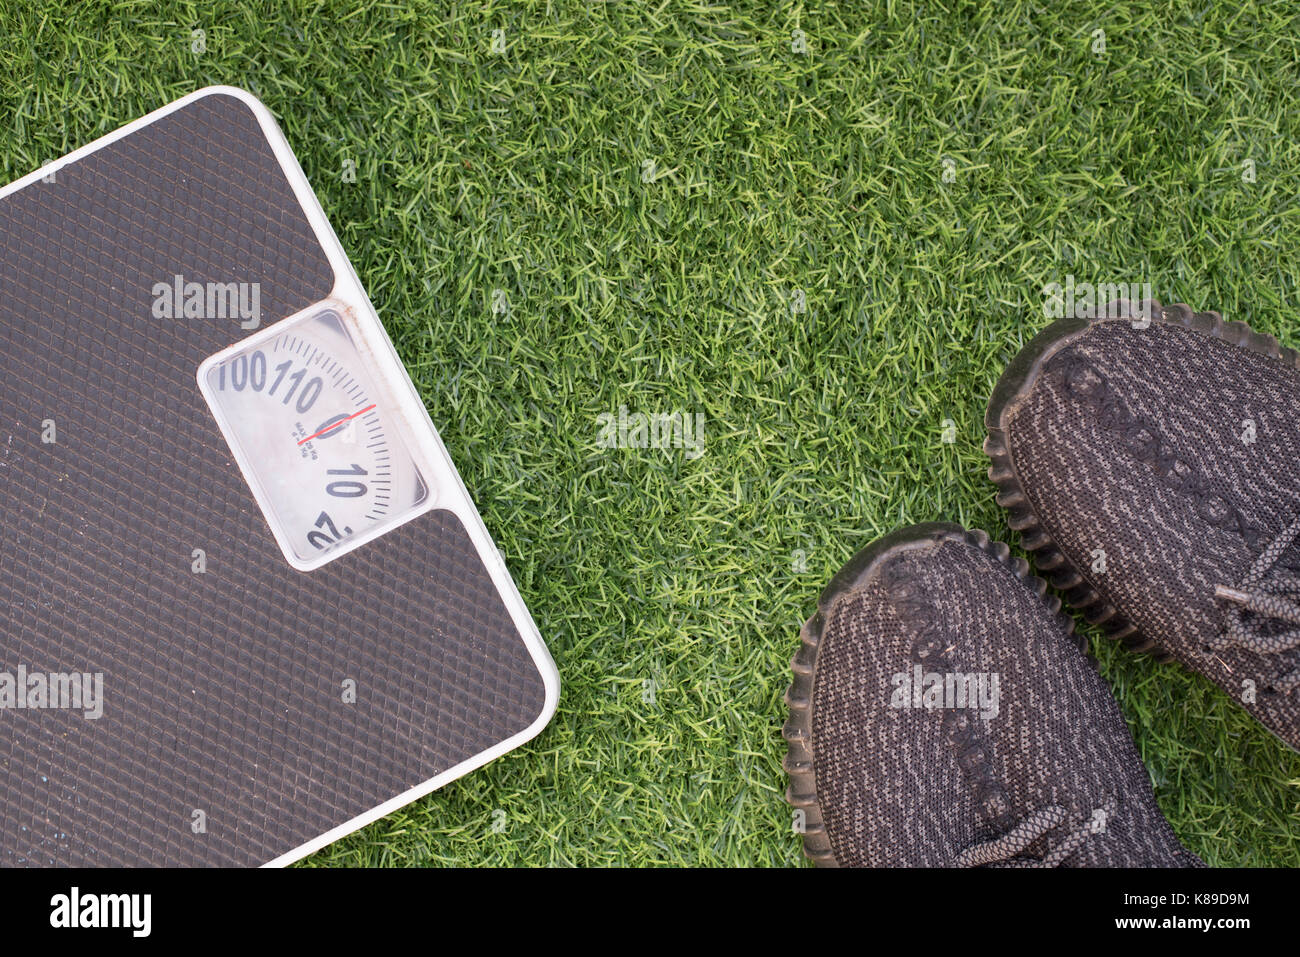 Fitness and weight loss concept, white scale and sport shoe on a grass, top view, free copy space - Stock Image